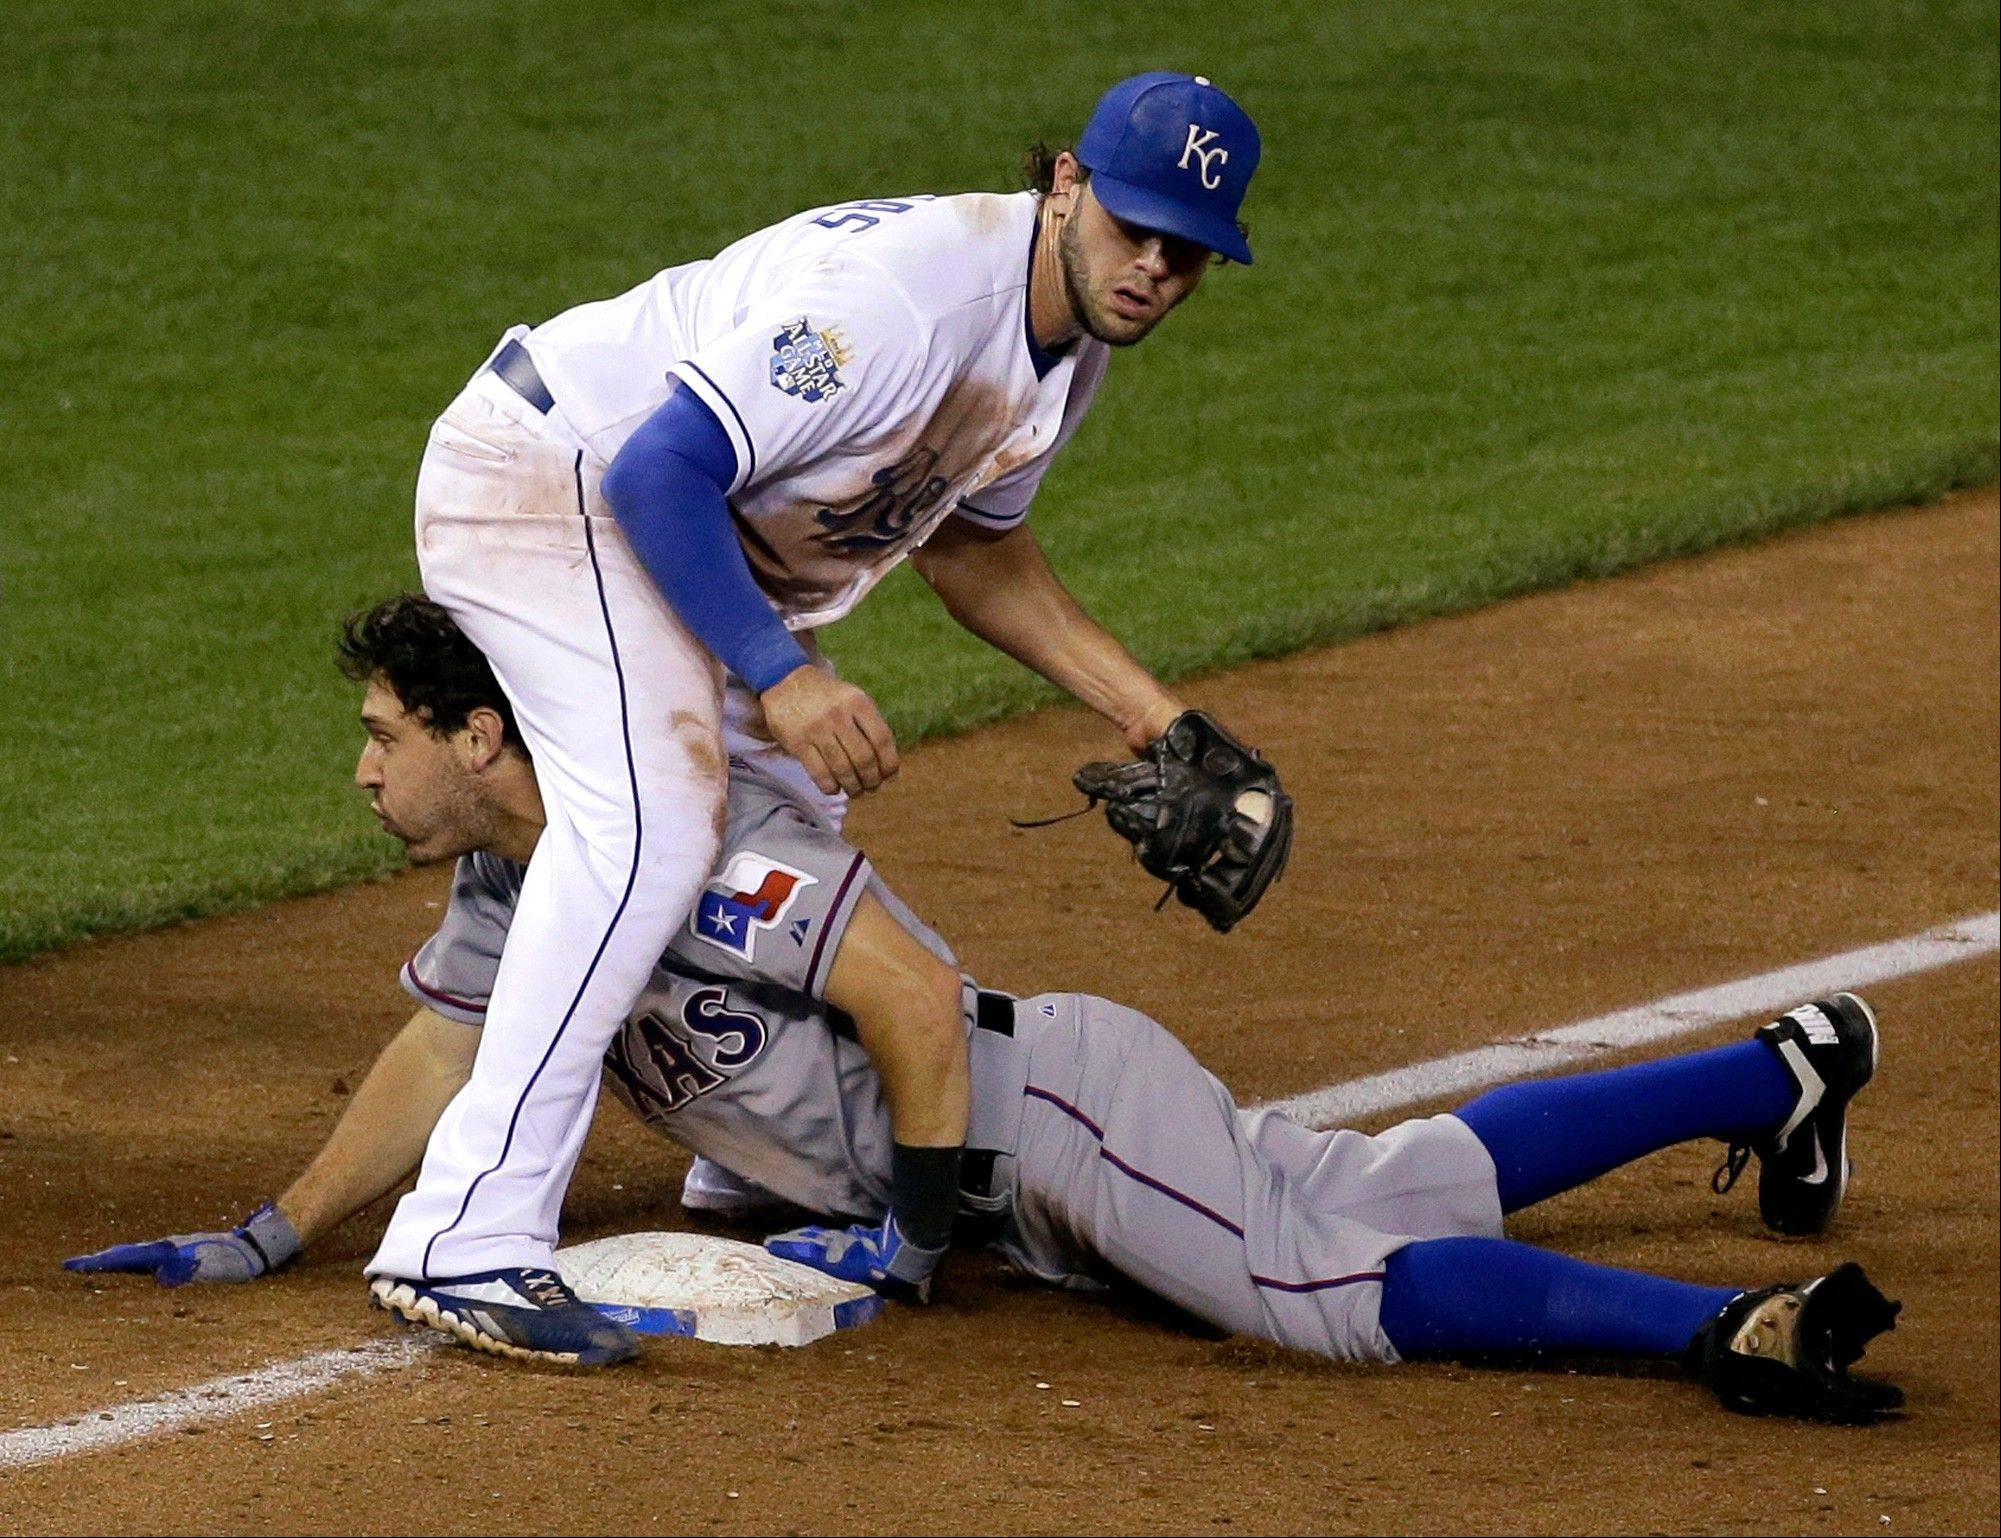 The Rangers� Ian Kinsler beats the tag by Royals third baseman Mike Moustakas for a triple during the 10th inning Thursday night in Kansas City.